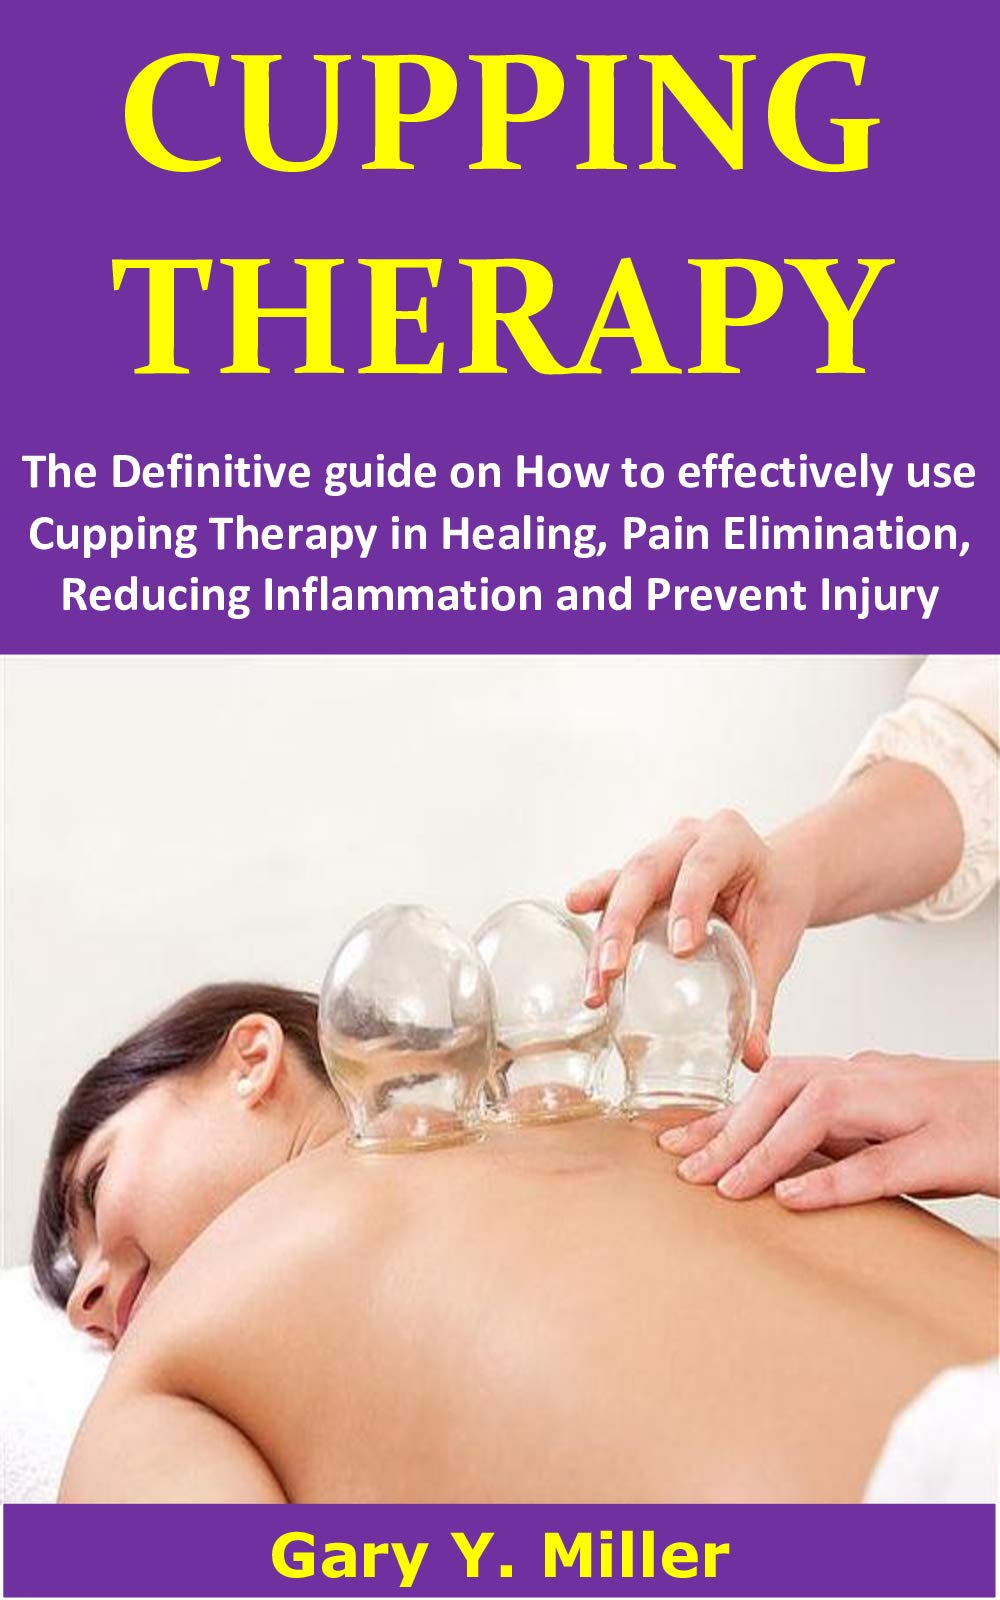 CUPPING THERAPY  The Definitive Guide On How To Effectively Use Cupping Therapy In Healing Pain Elimination Reducing Inflammation And Prevent Injury  English Edition